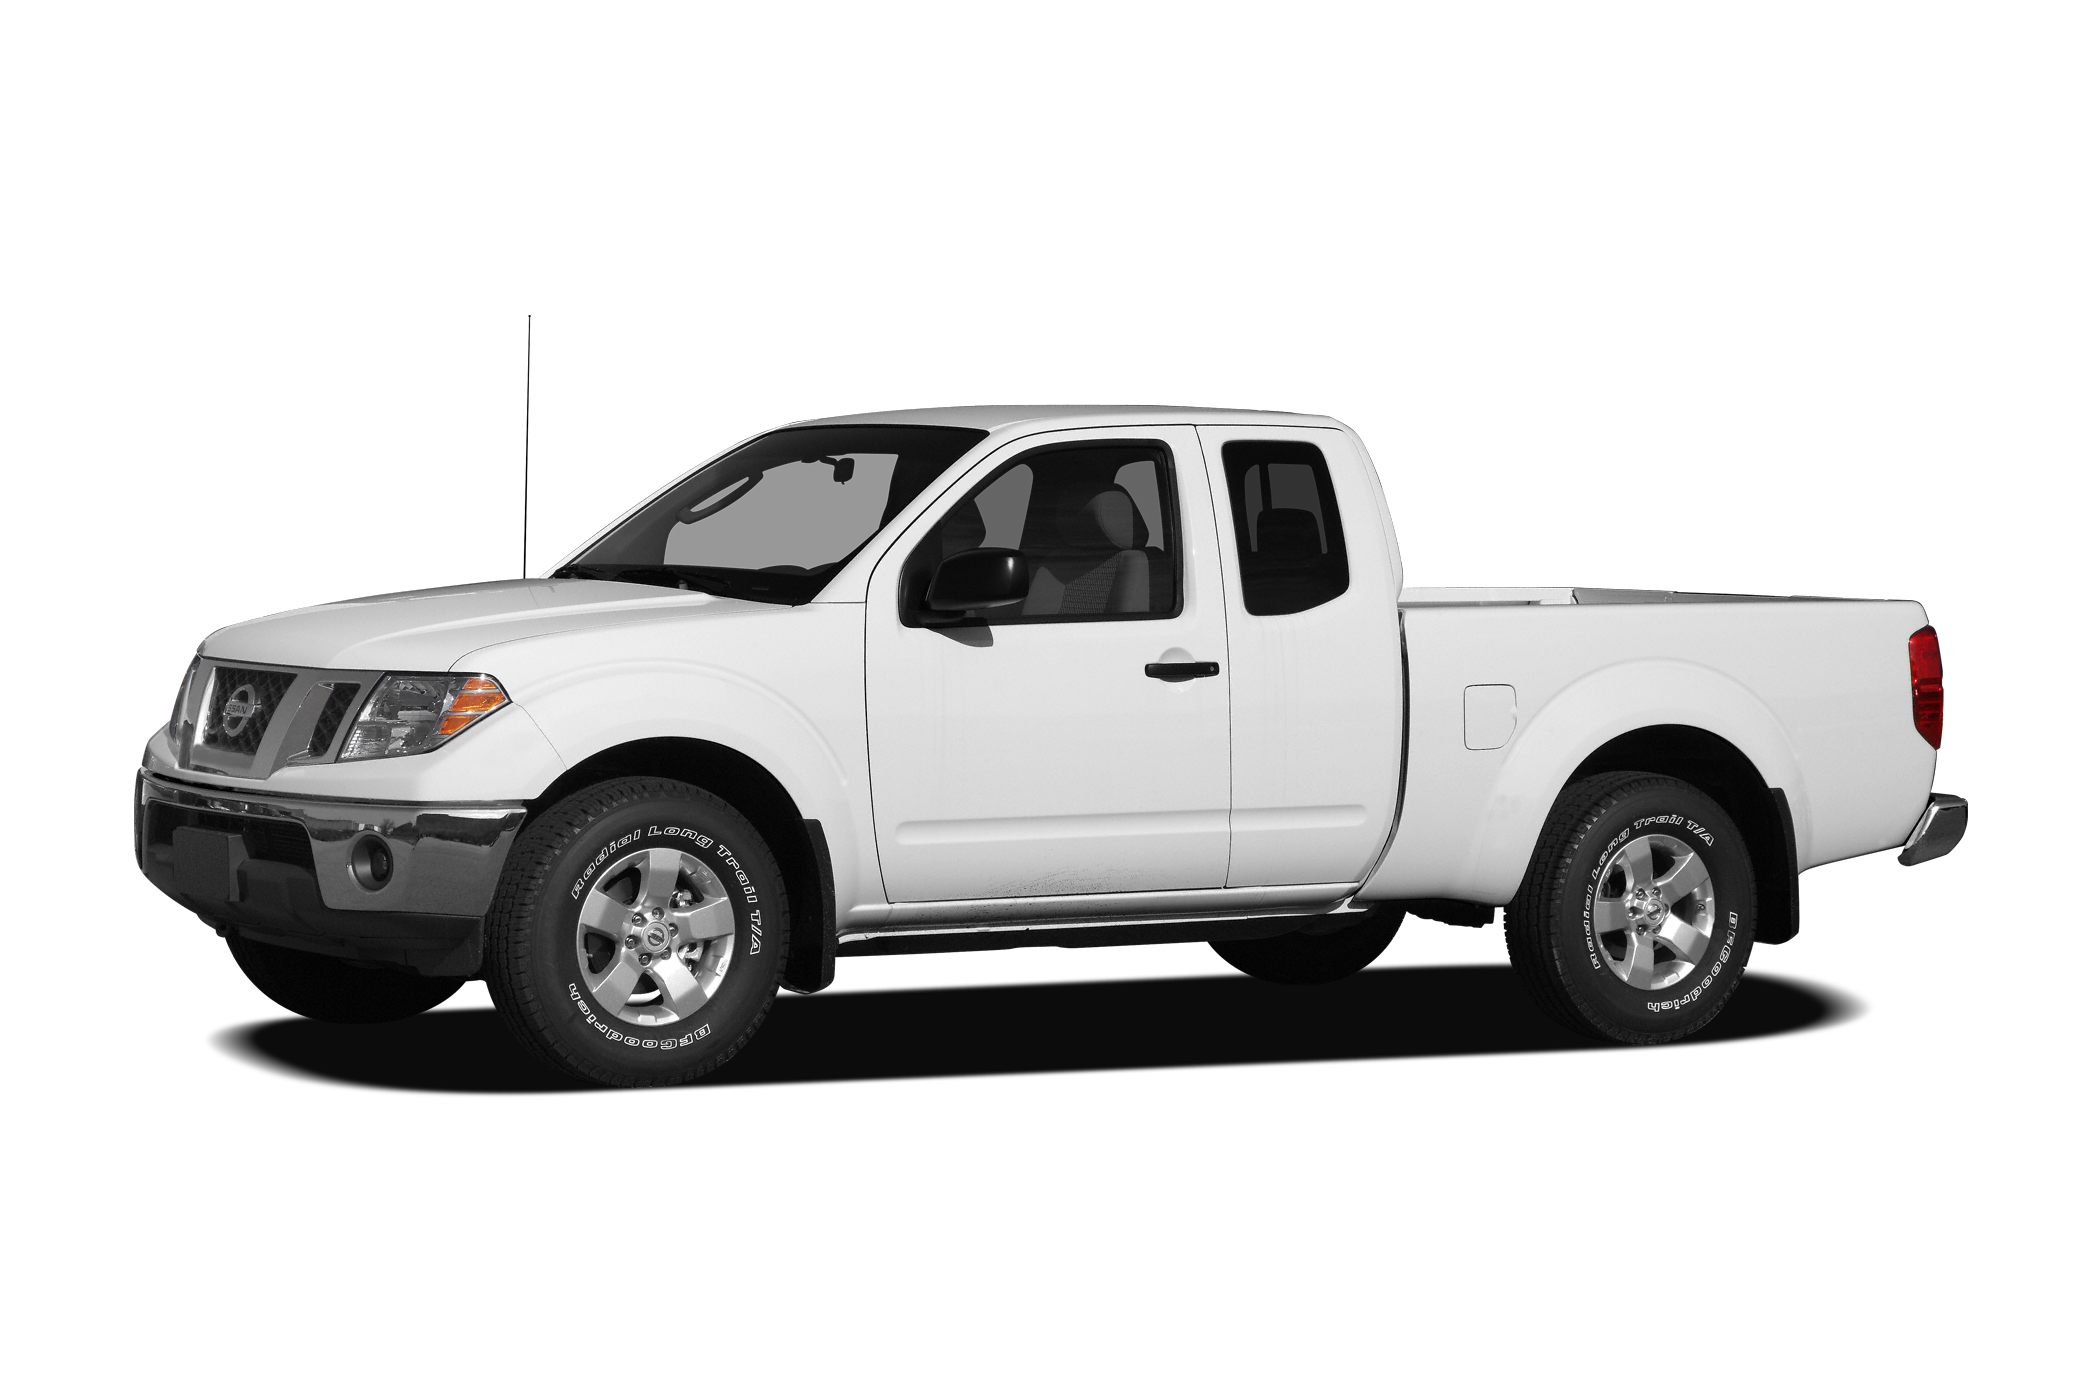 2011 Nissan Frontier SV Crew Cab Pickup for sale in Muskegon for $17,981 with 95,493 miles